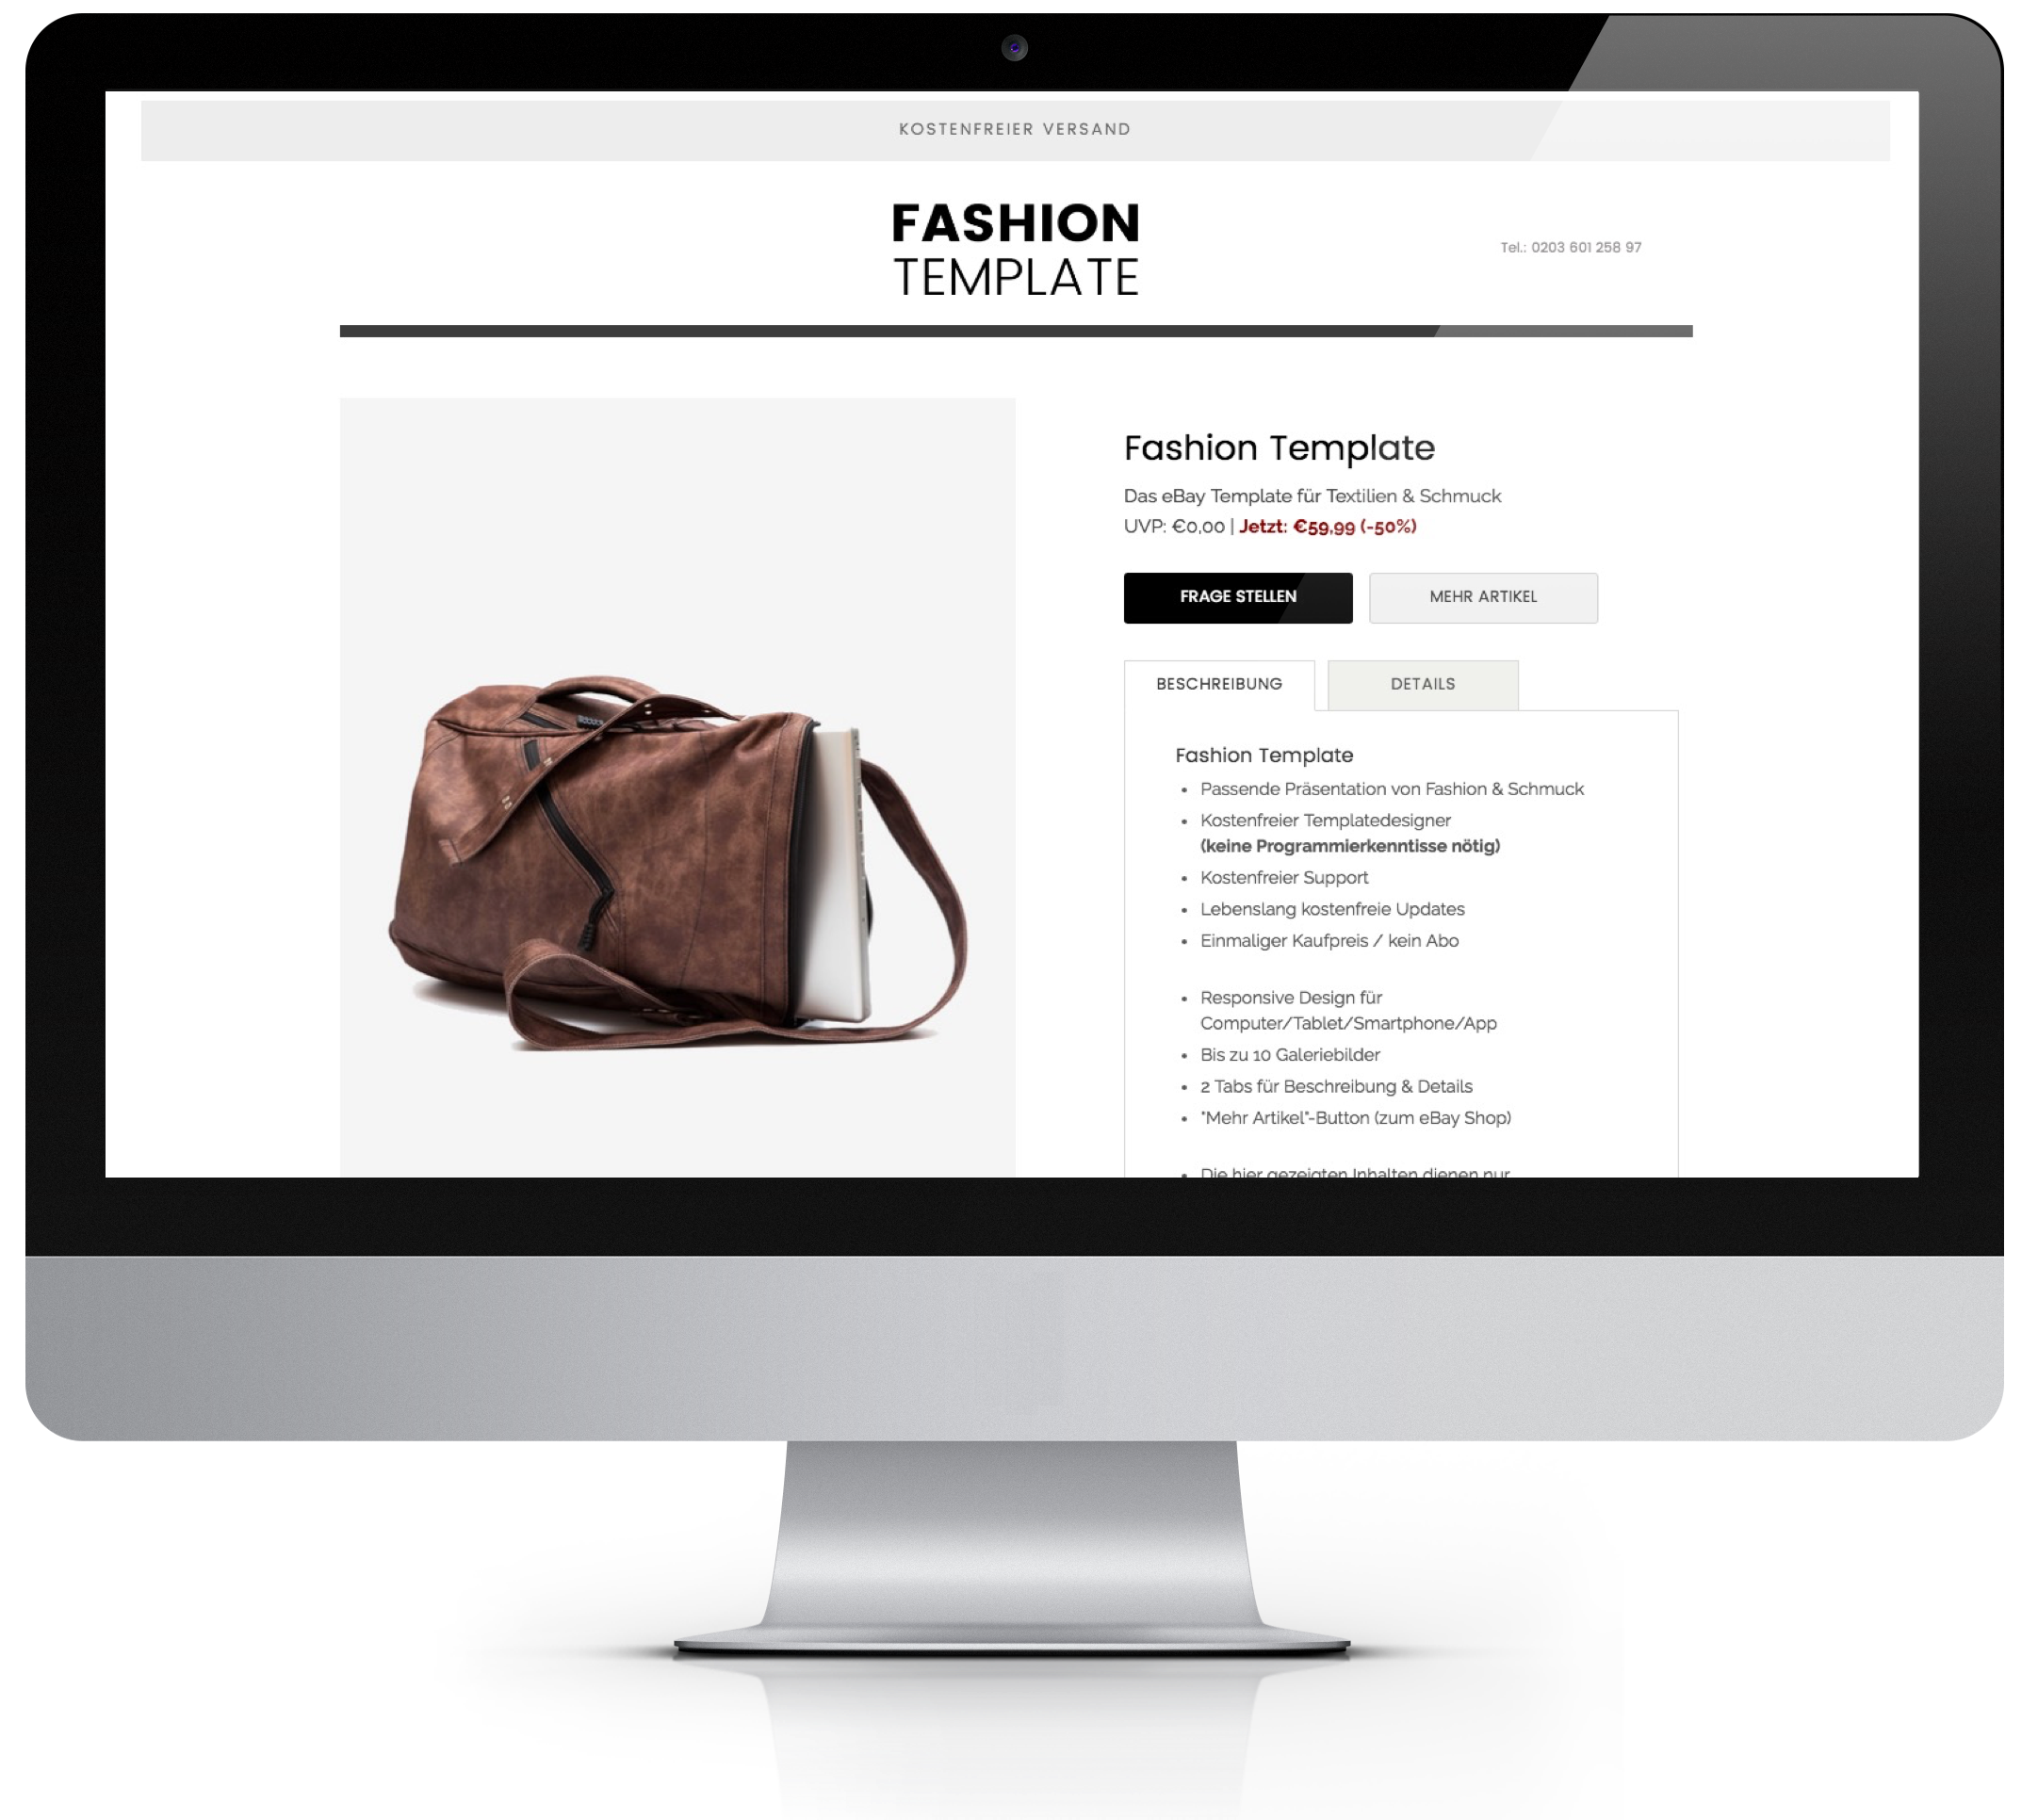 Fashion Template Angebotsvorlage - Pixelsafari e-Commerce Solutions